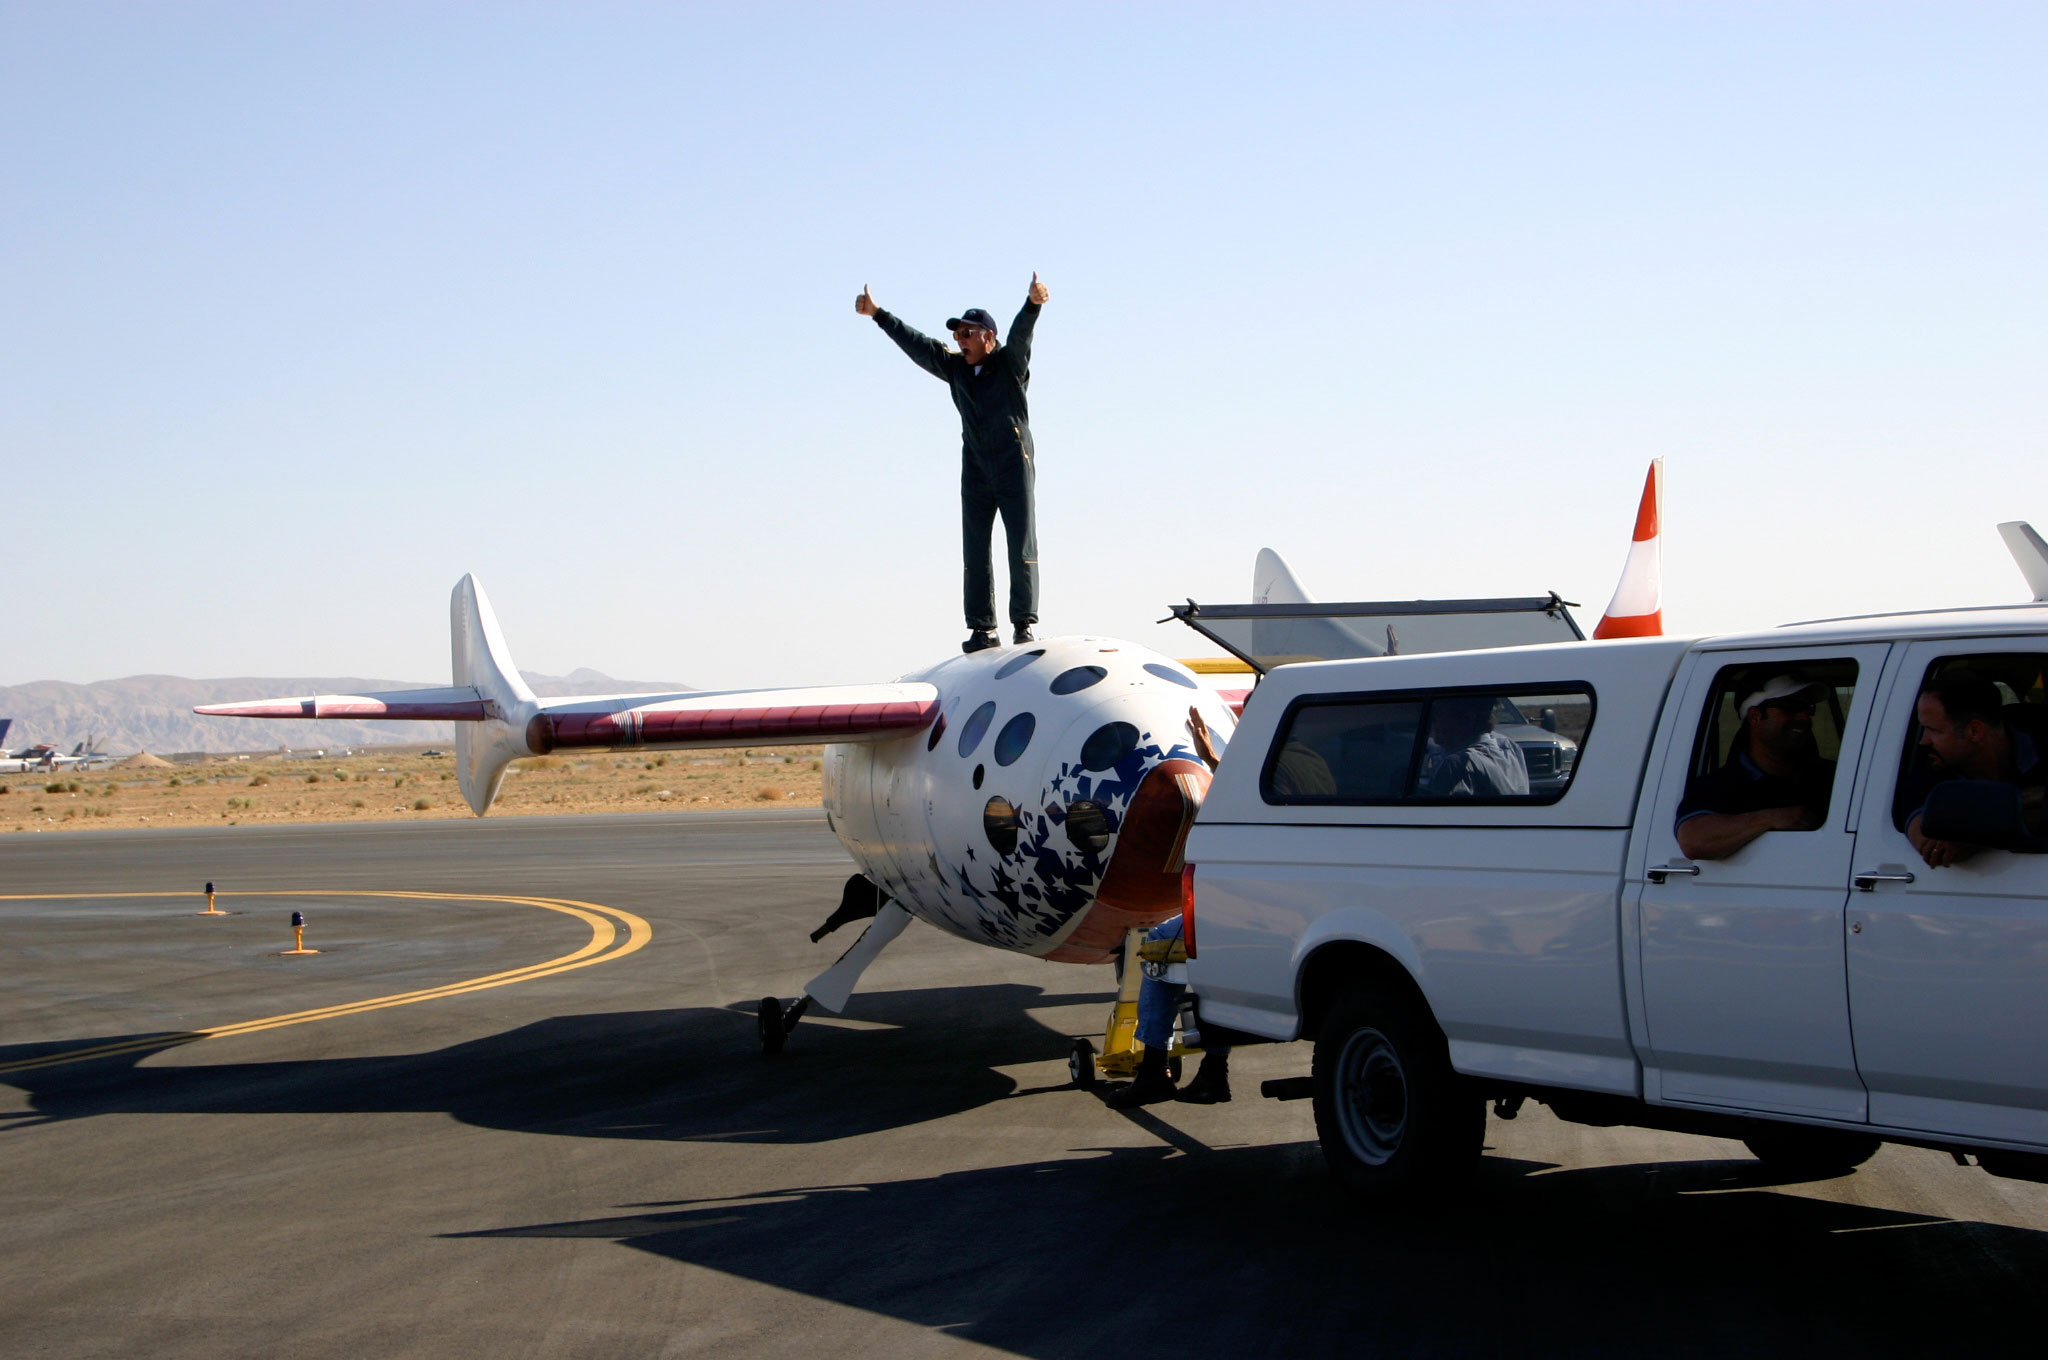 Mike Melvill celebrates atop SpaceShipOne after completion of his first of two trips to outer space aboard the vehicle.  Credit: http://www.flickr.com/photos/densaer/